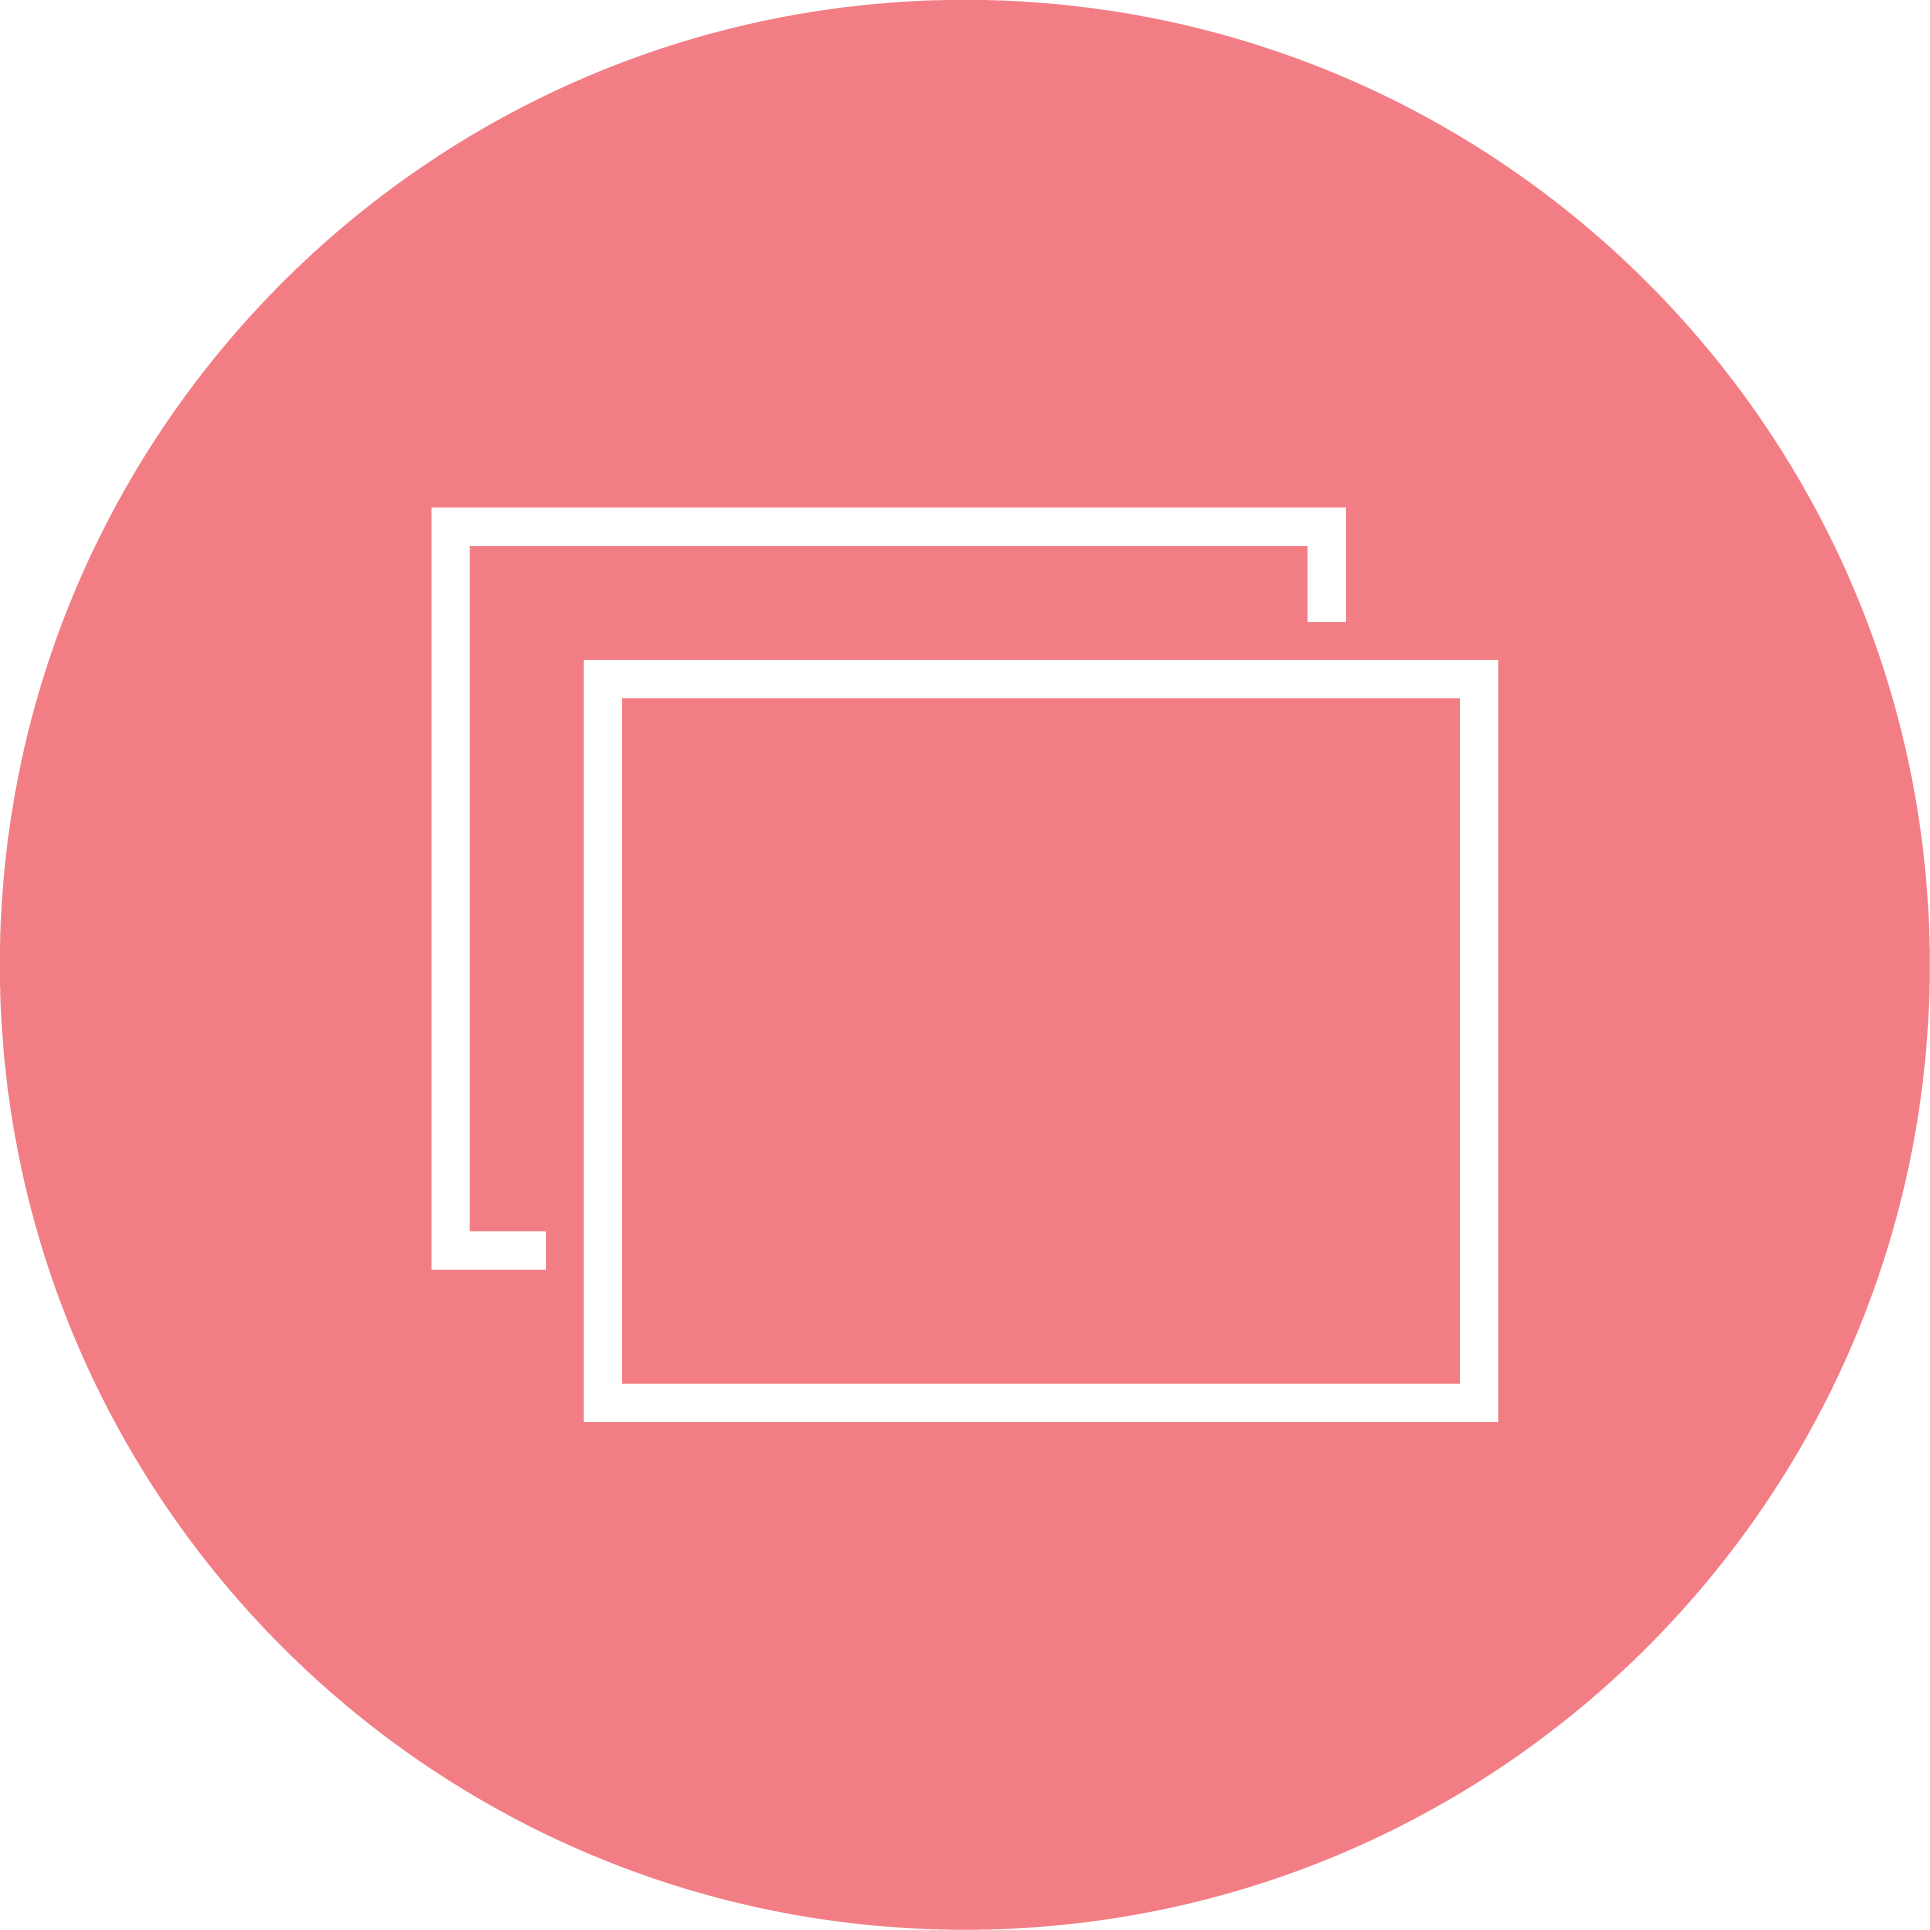 icon of Flashcard tool